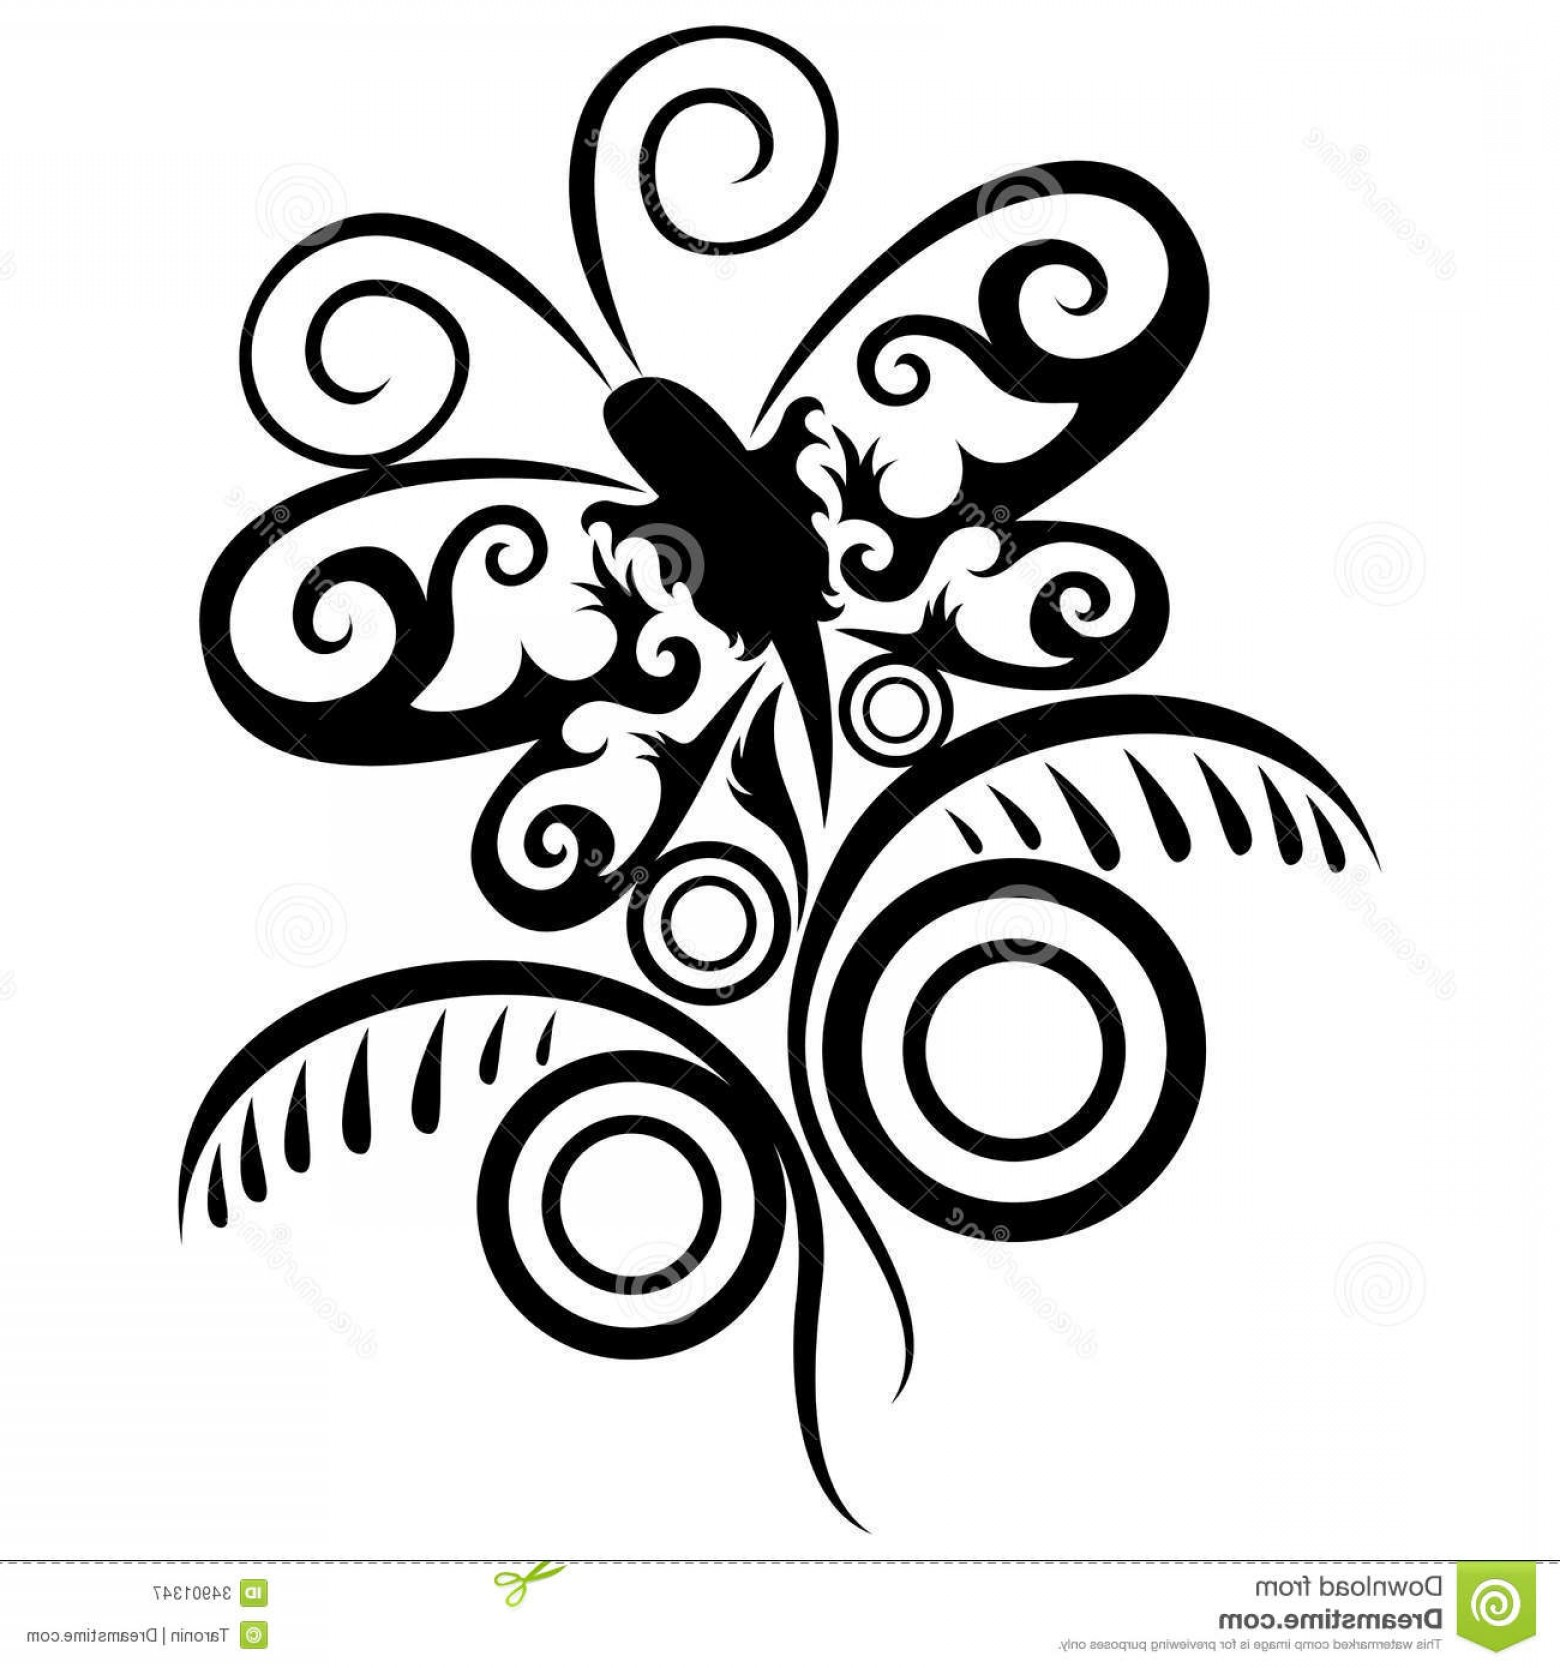 Butter Fly And Flower Vector Black And White: Royalty Free Stock Photography Abstract Pattern Butterfly Flower Vector Isolated White Image